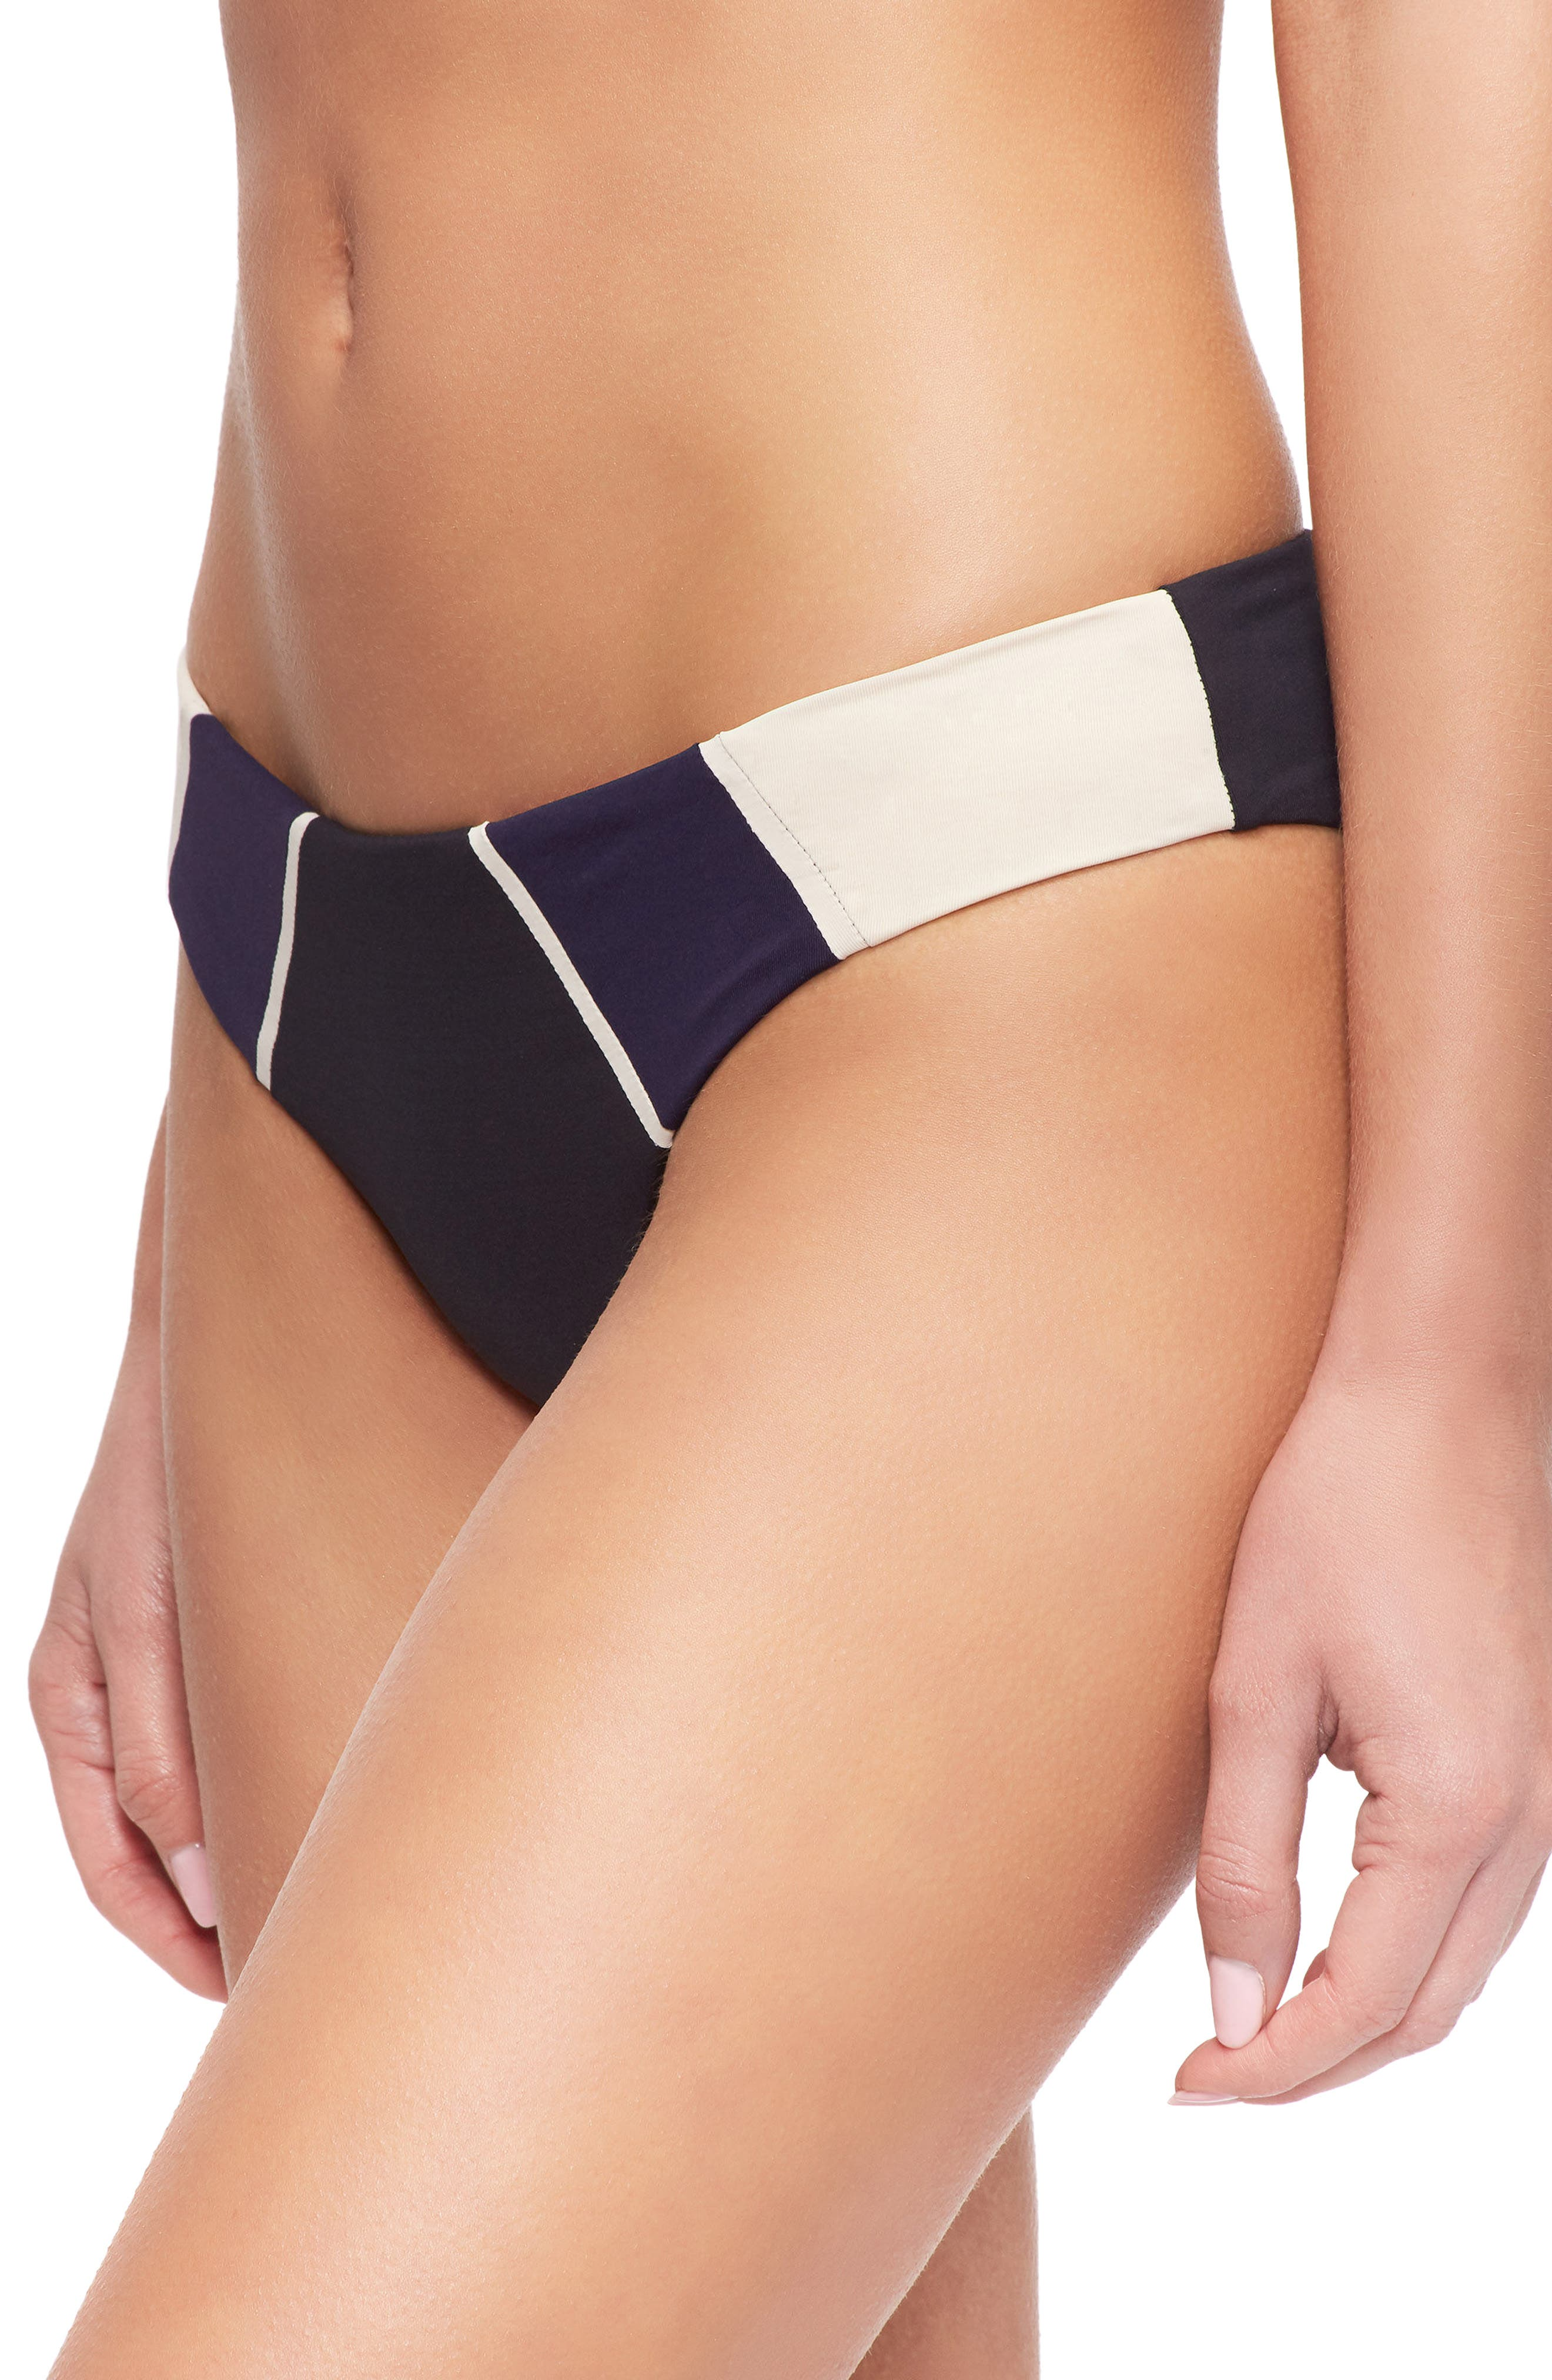 Alea Bikini Bottoms,                             Alternate thumbnail 4, color,                             TAPIOCA/EVENING BLUE